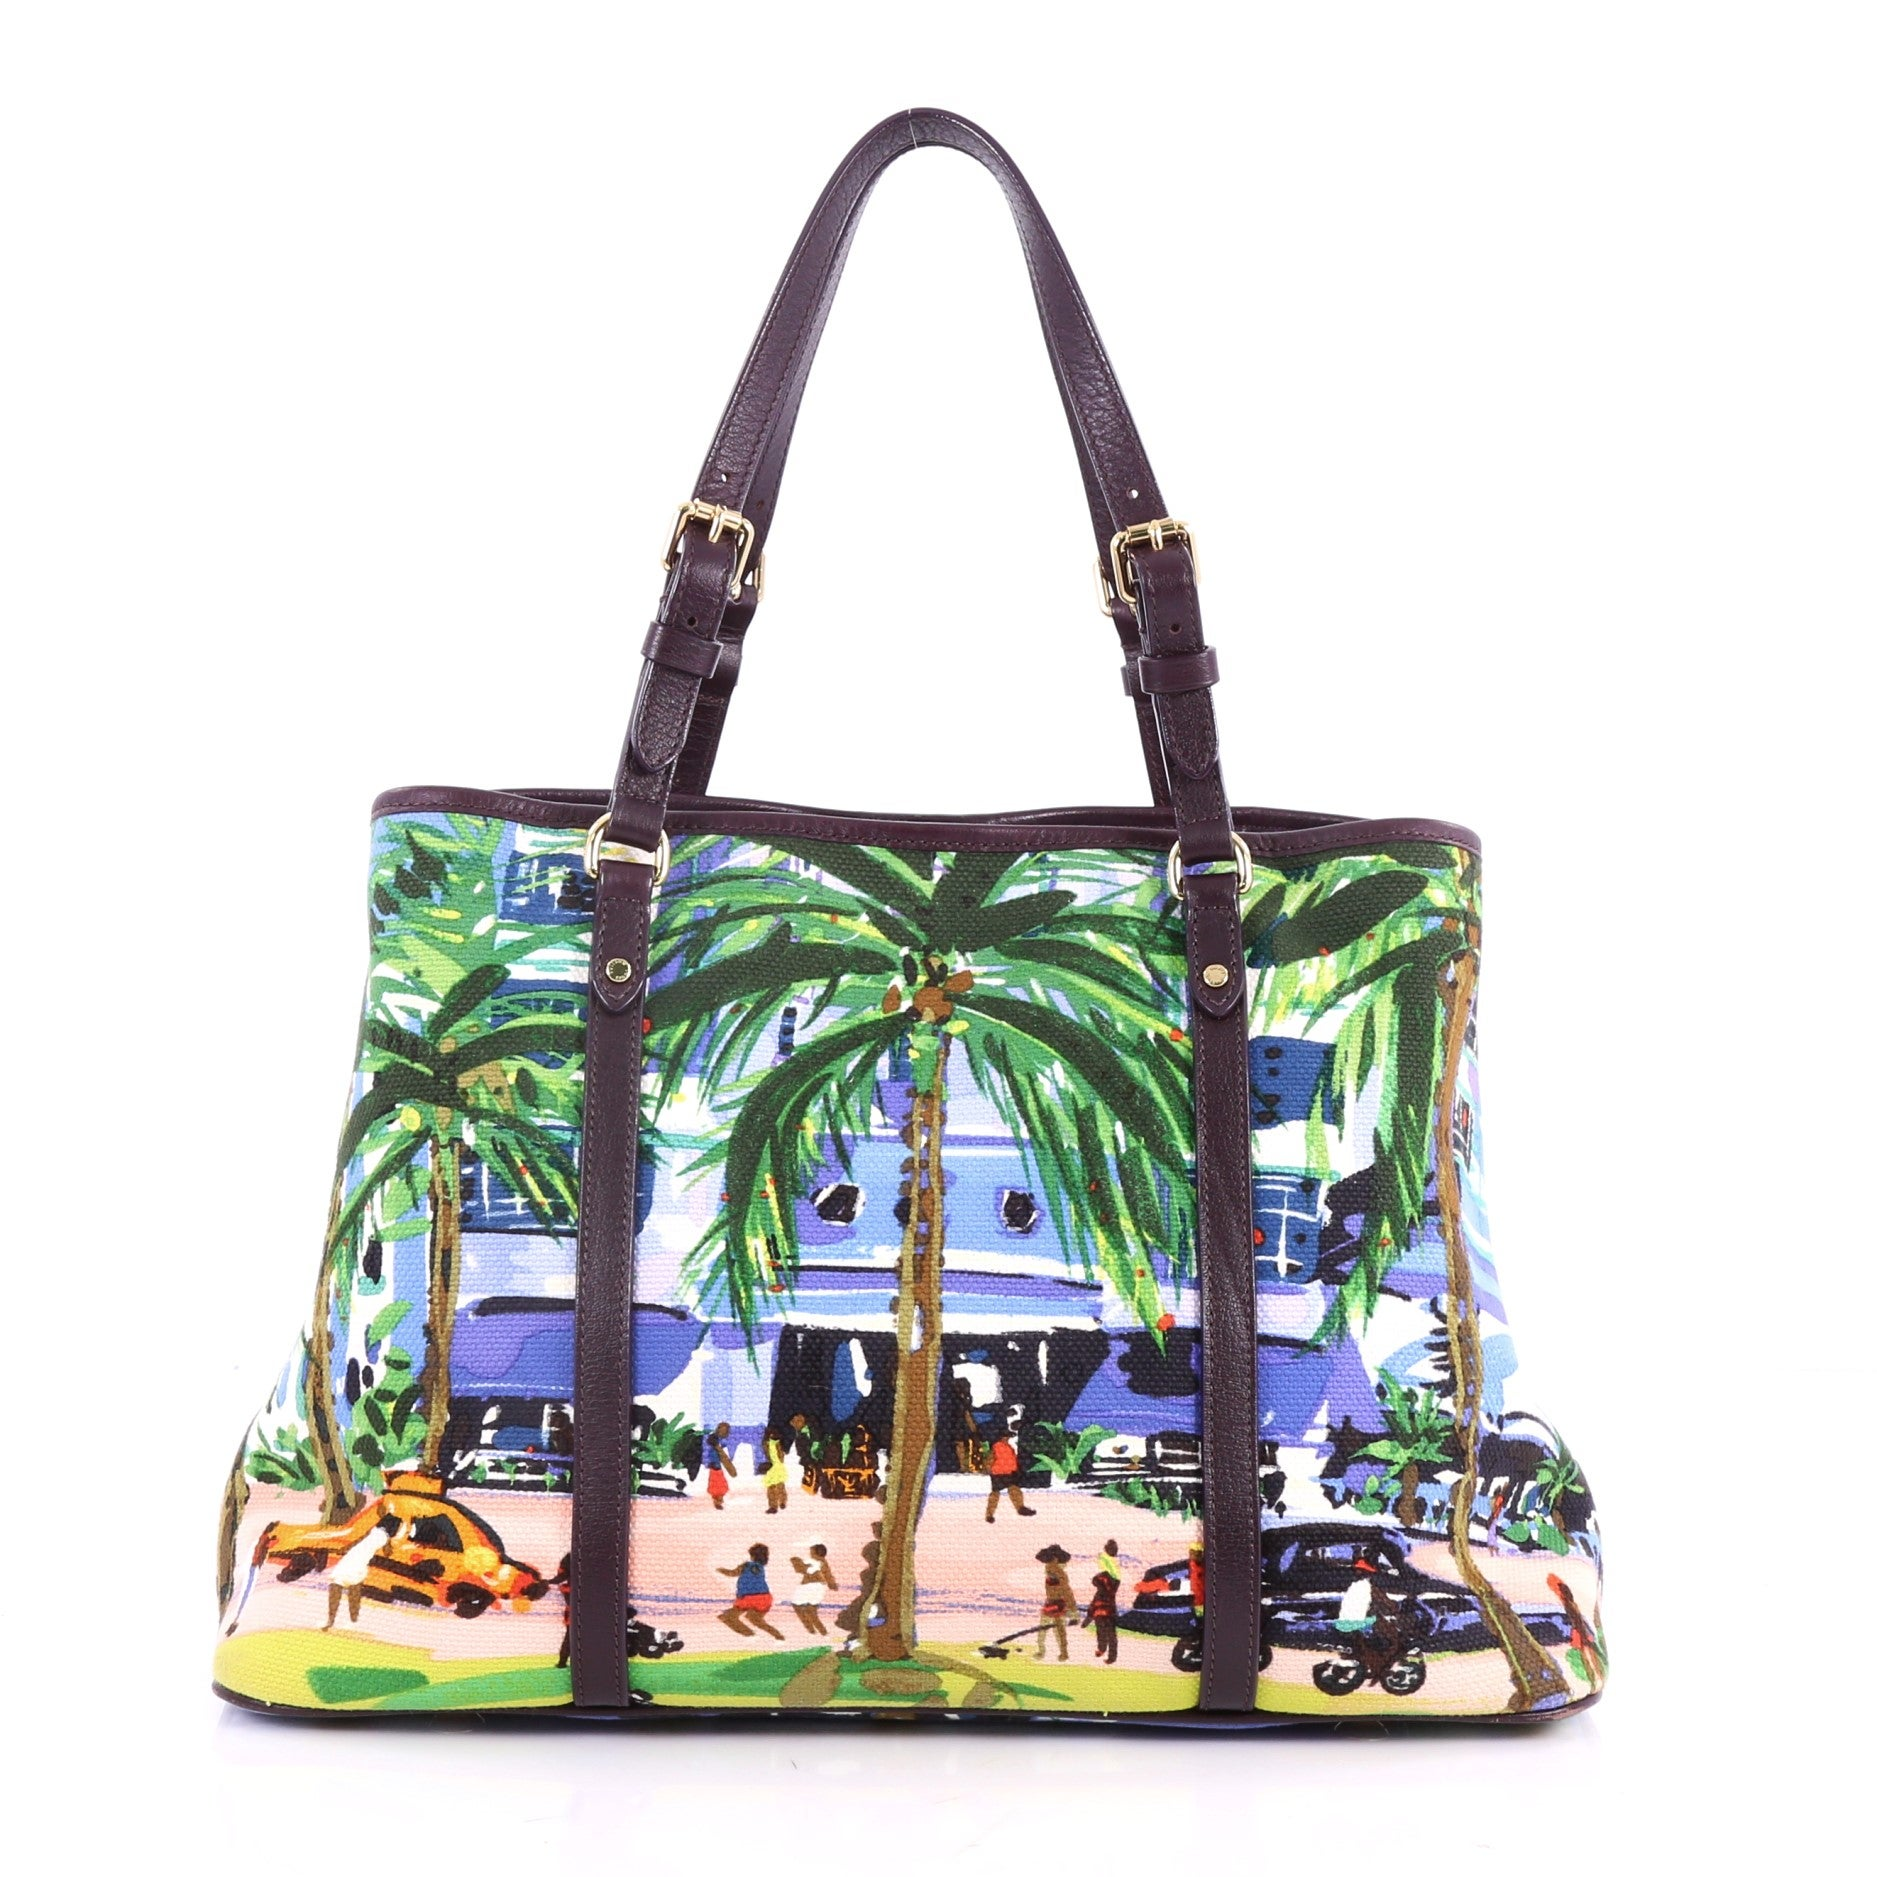 f89dd03acba3 Louis Vuitton Ailleurs Cabas Limited Edition Printed Canvas PM at 1stdibs